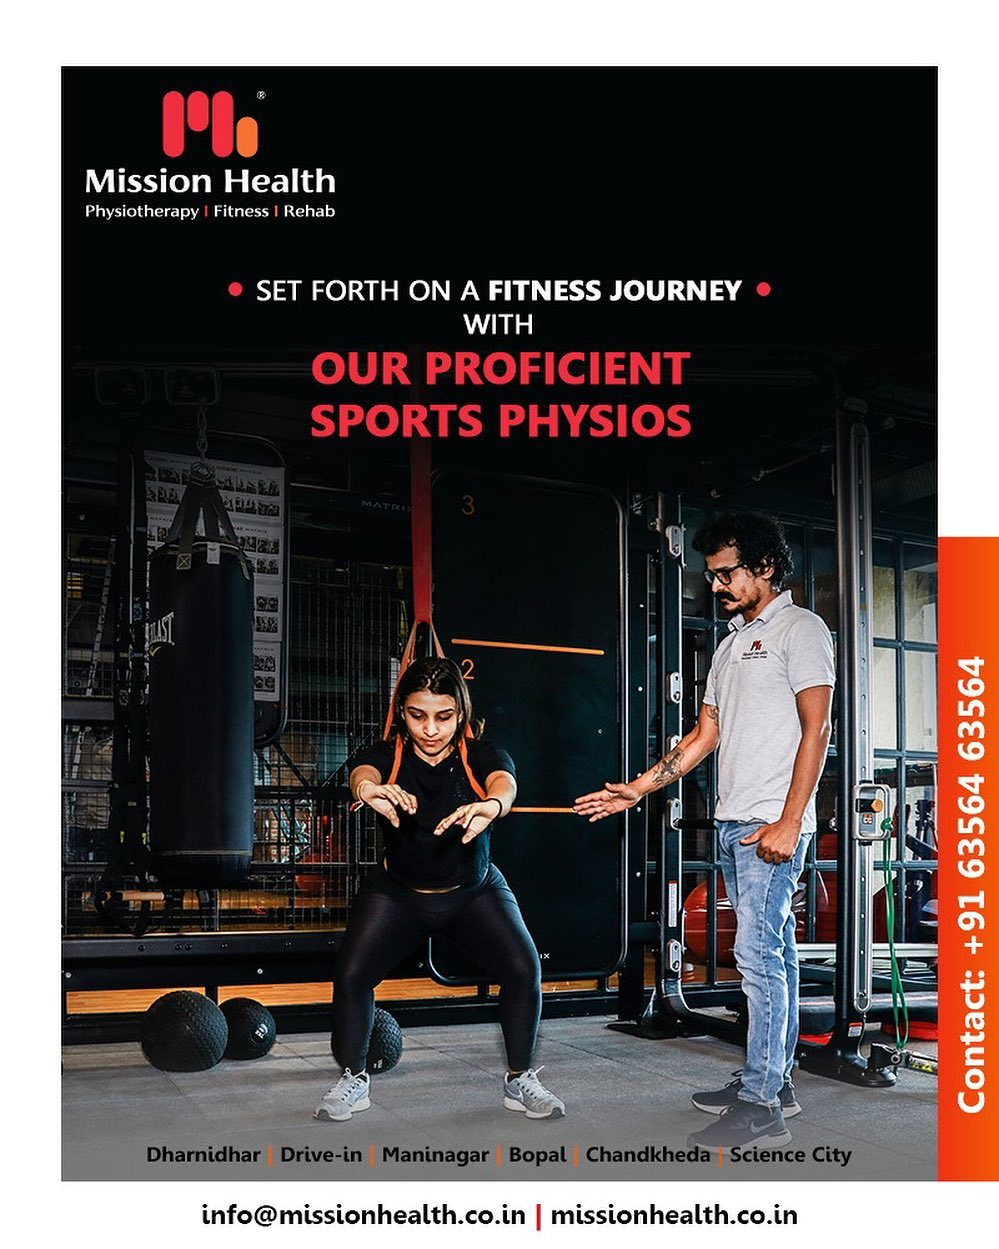 Embark upon your fitness journey with our Proficient Sports Physios!  #ProficientSportsPhysios #GetFit #MissionHealth #MissionHealthIndia #fitnessRehab #AbilityClinic #MovementIsLife #weightloss #fitness #fitnessoffer #weightmanagement